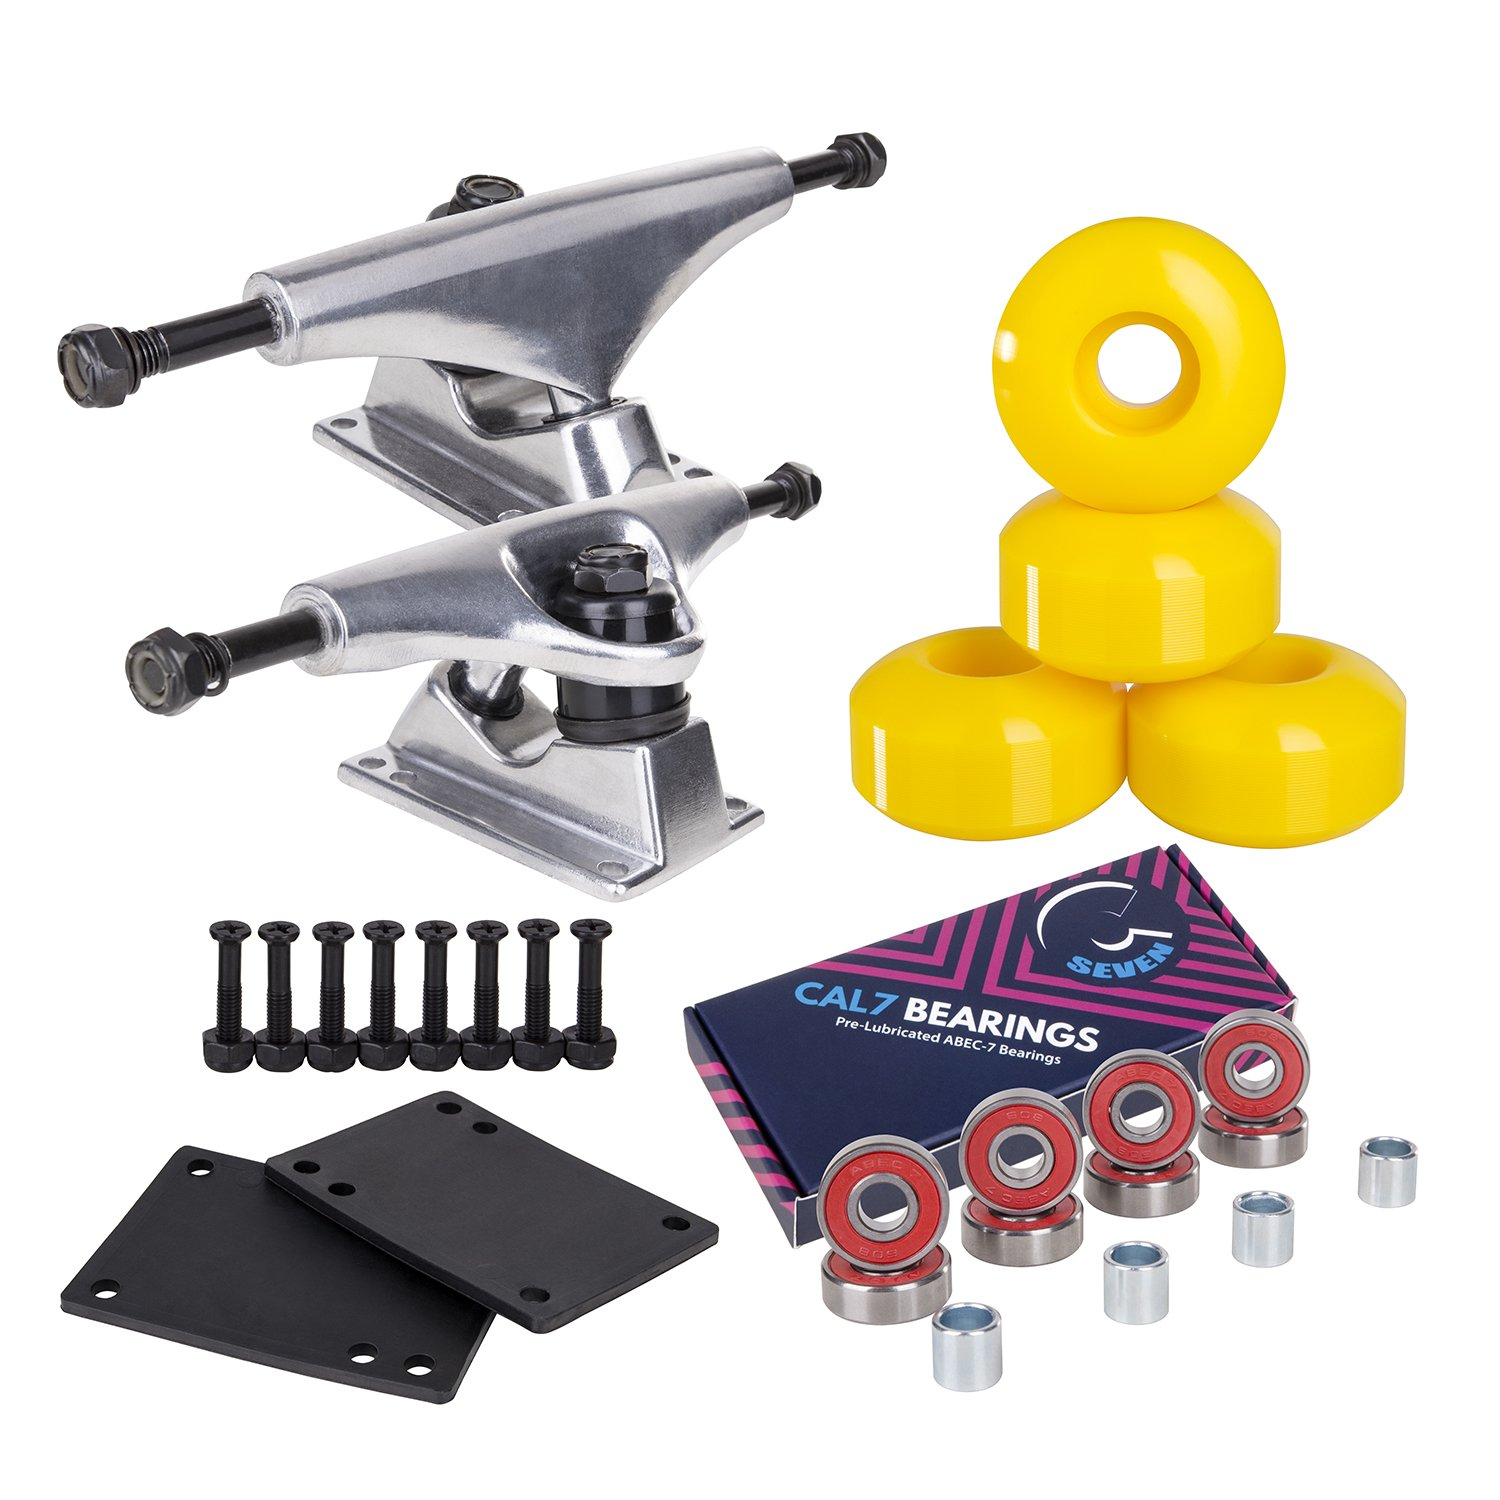 Cal 7 Skateboard Package Combo with 5 Inch / 129 Millimeter Trucks, 52mm 99A Wheels, Complete Set of Bearings and Steel Hardware (Silver Truck + Neon Yellow Wheels) by Cal 7